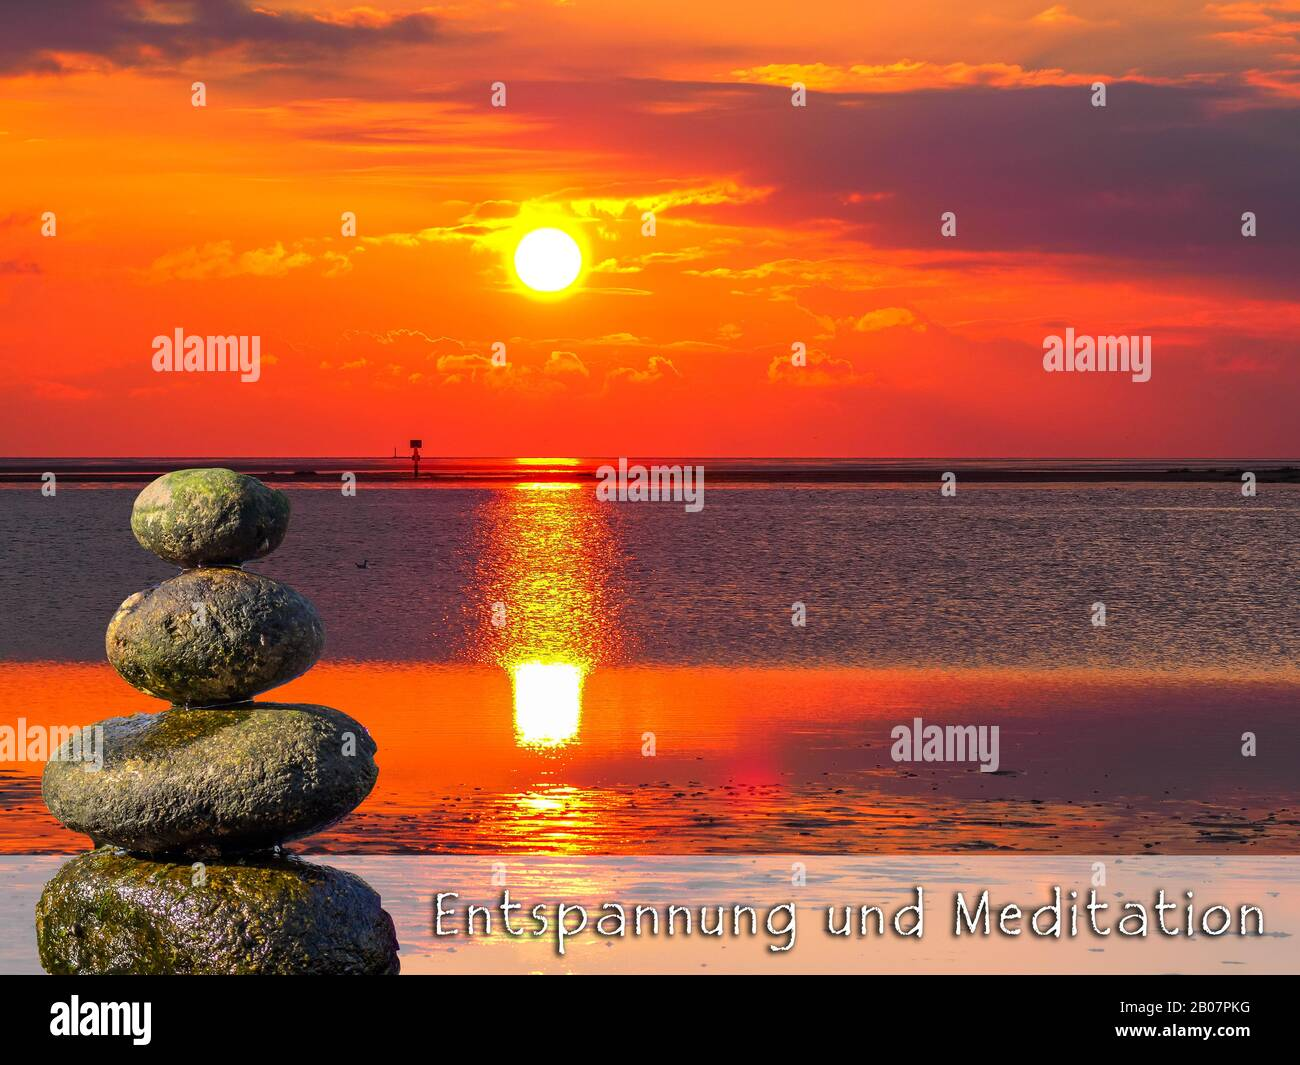 Relaxation And Meditation Banner Template In German Stock Photo Alamy